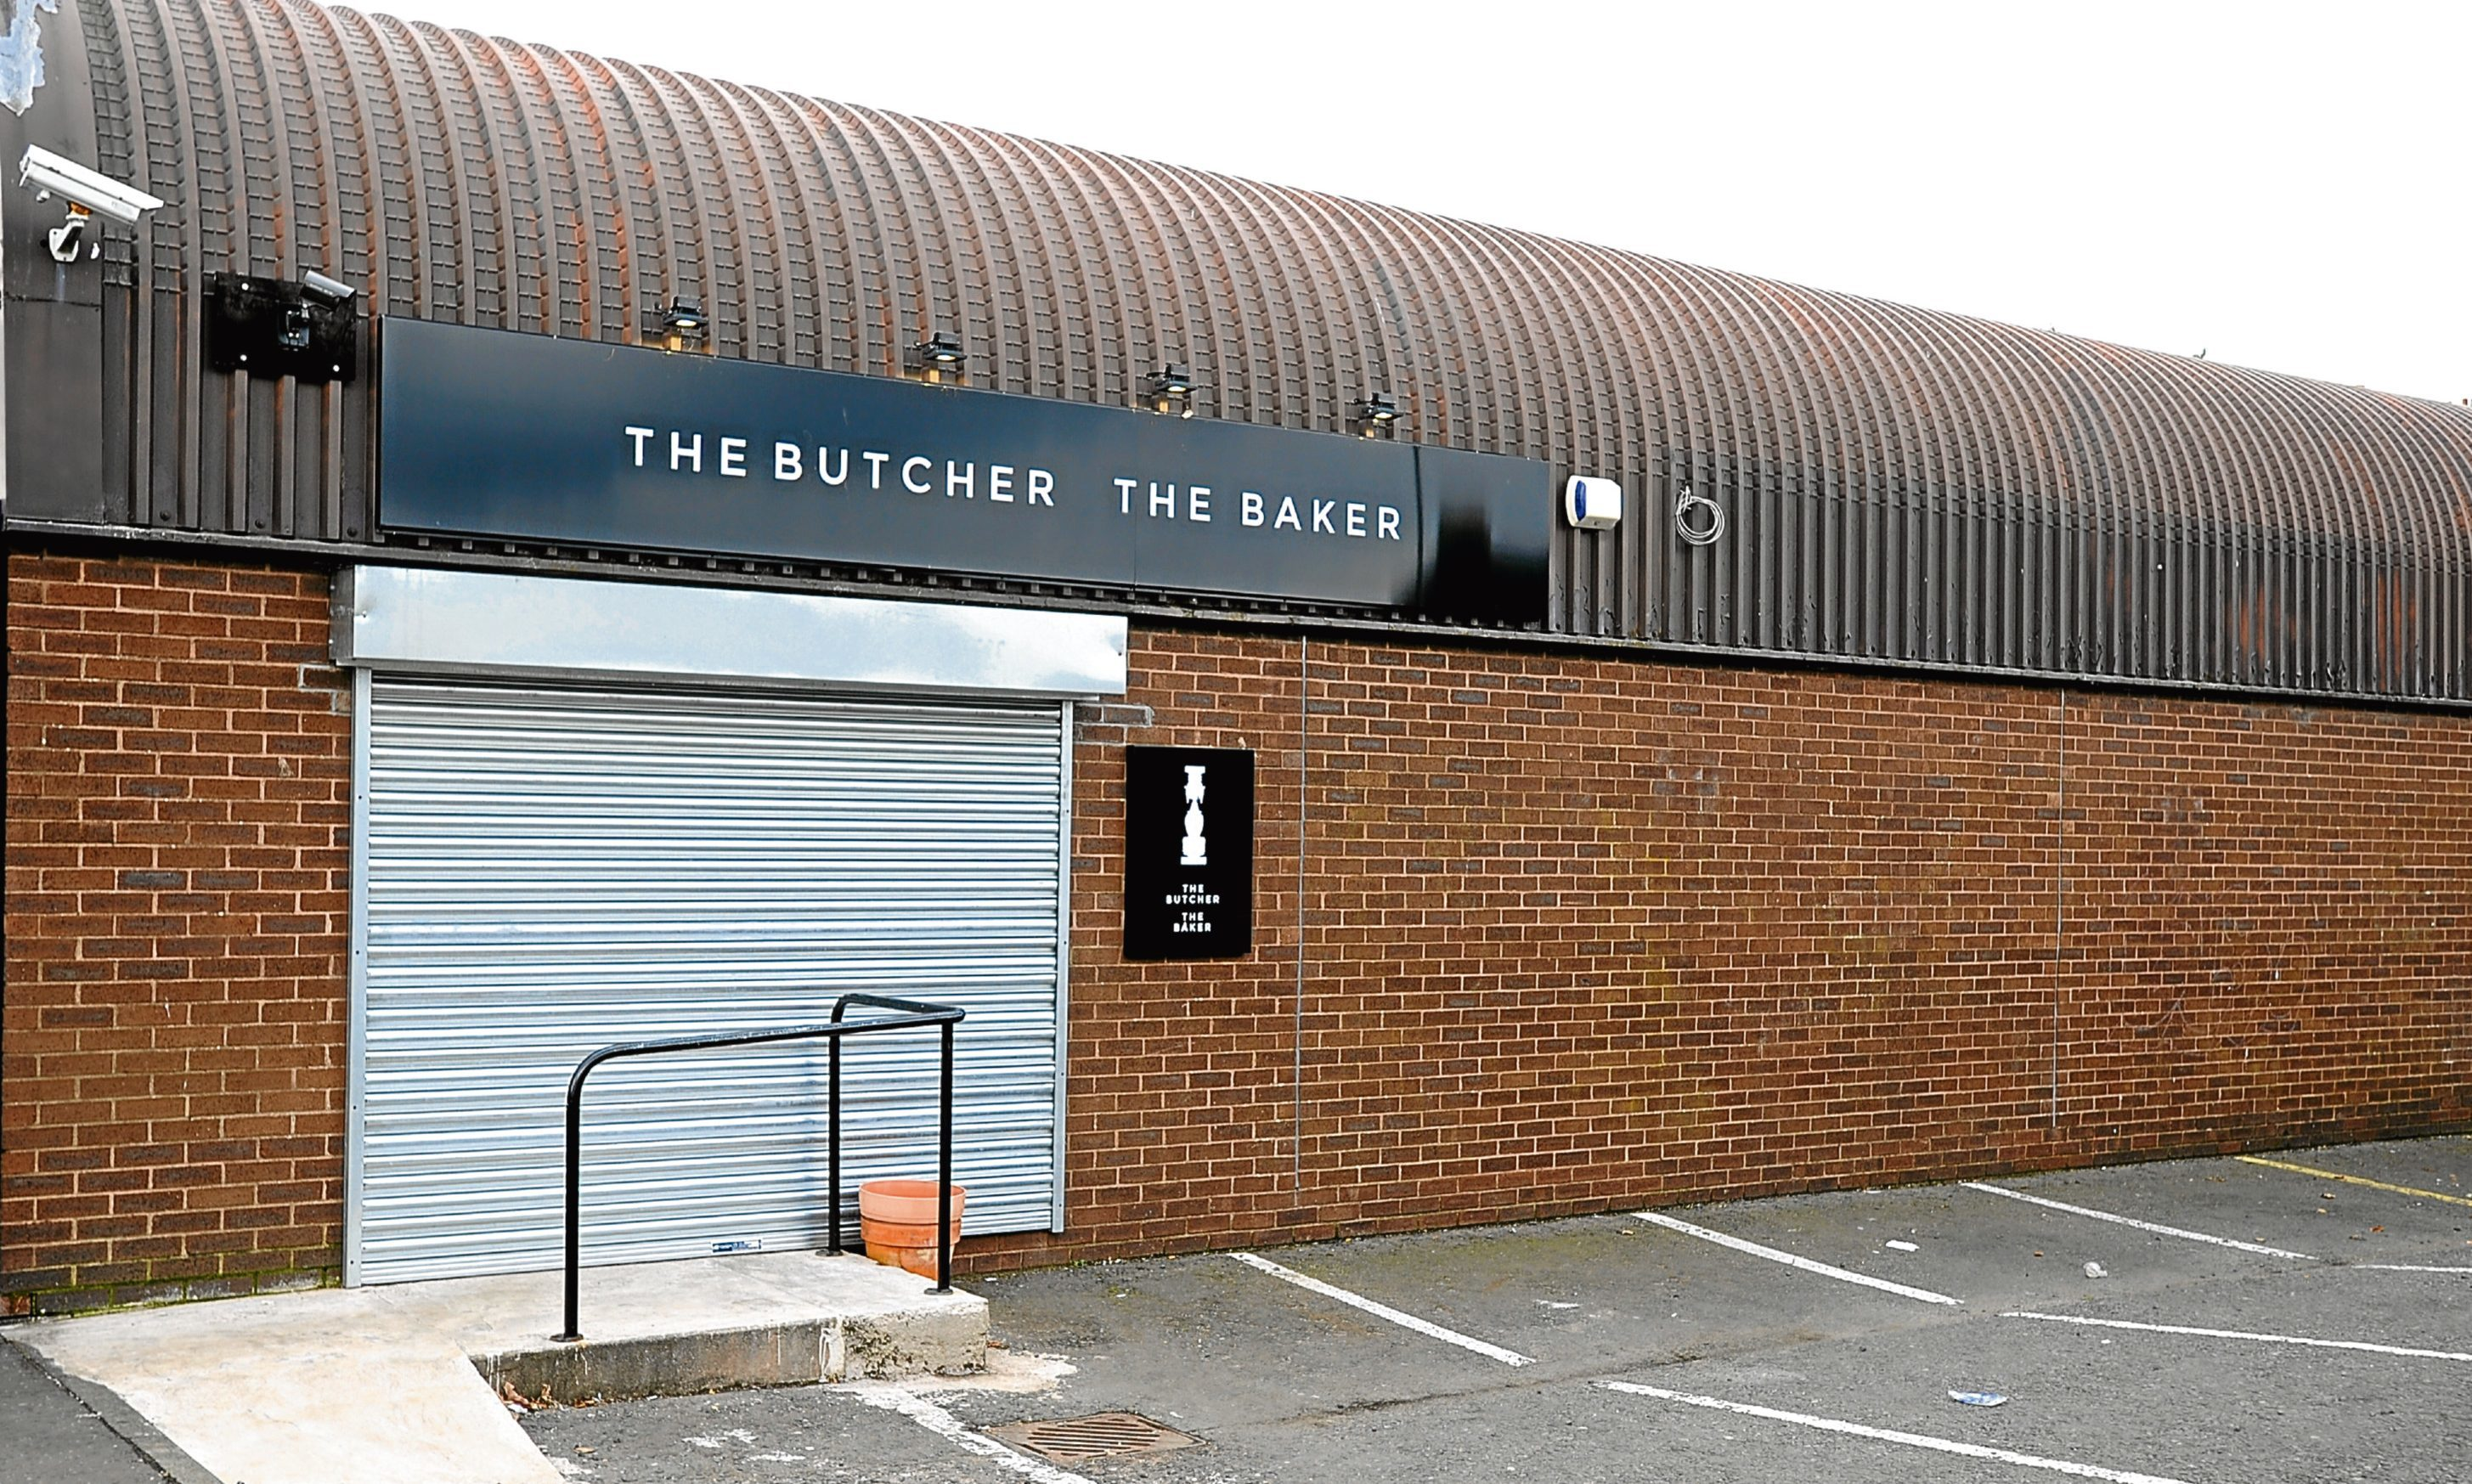 The Butcher The Baker in Annfield Road, Dundee